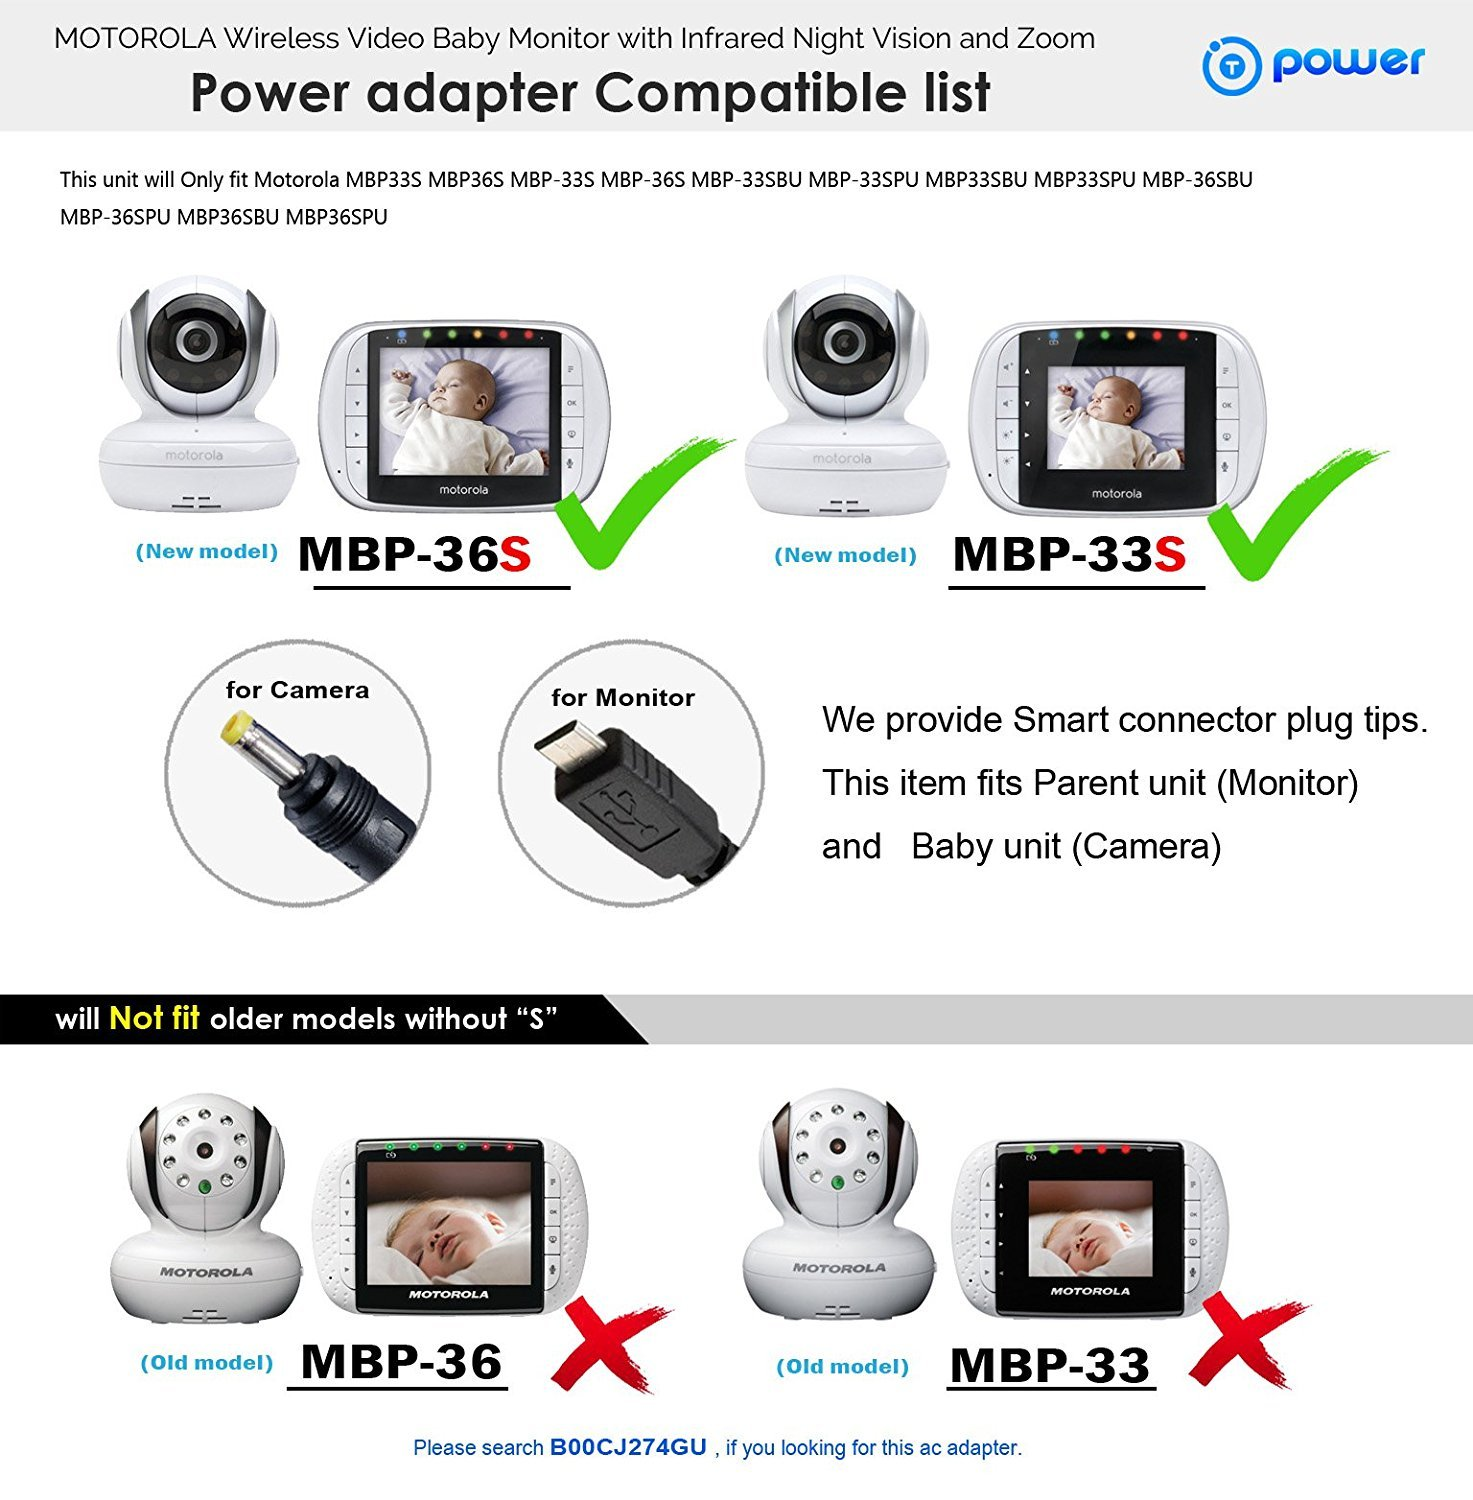 T-Power for Motorola MBP33S MBP36S MBP-33S MBP-36S MBP-33SBU MBP-33SPU MBP33SBU MBP33SPU MBP-36SBU MBP-36SPU MBP36SBU MBP36SPU Remote Wireless Video Baby Monitor 6.6 feet Cord TM